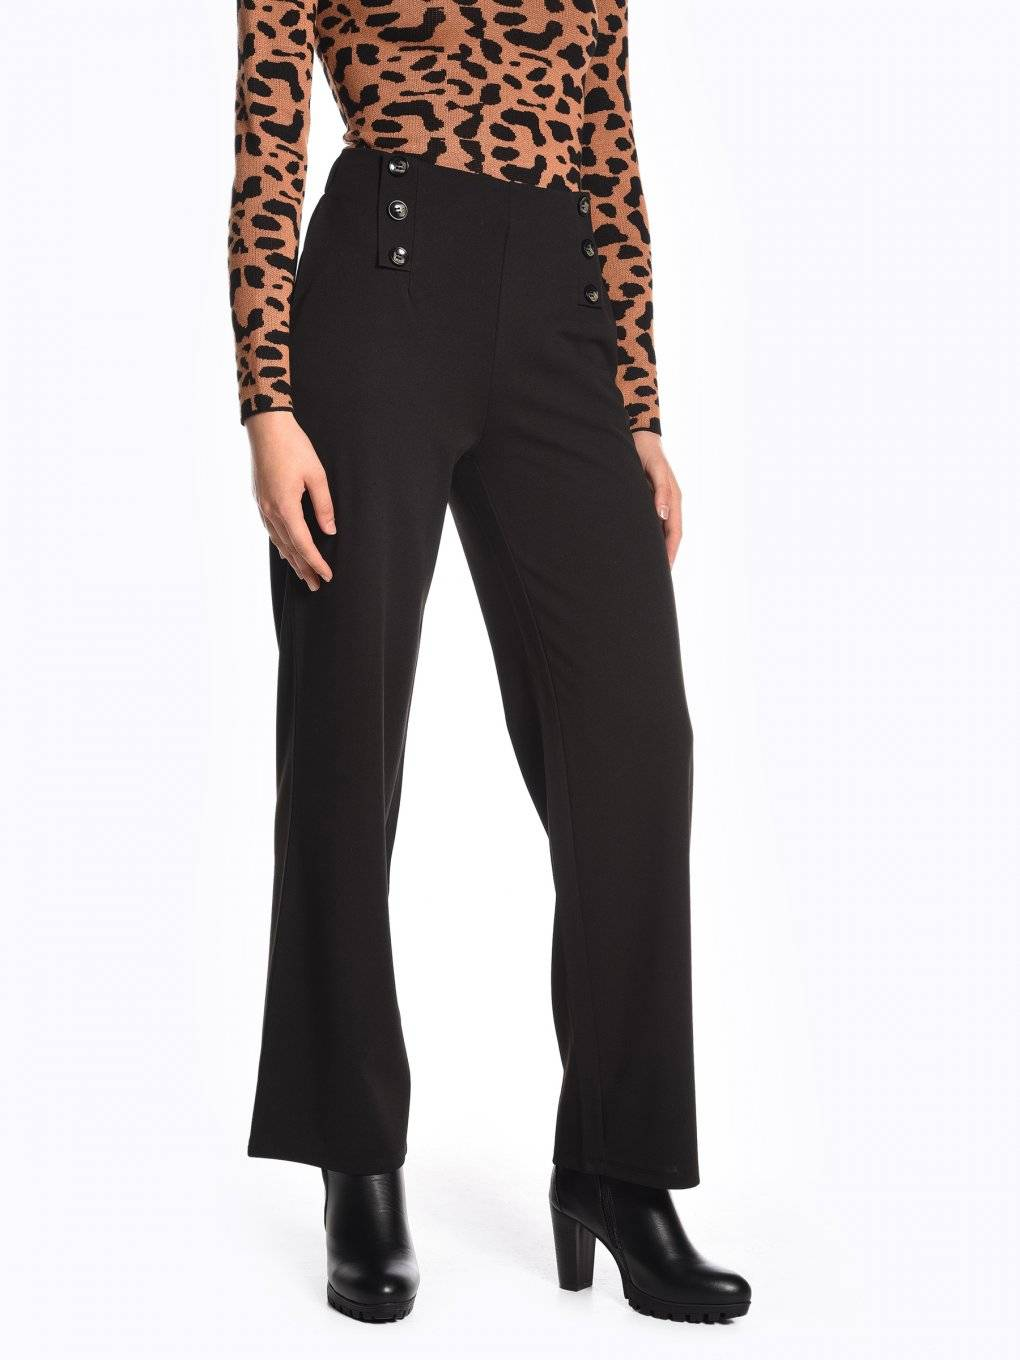 Wide leg high waisted stretchy trousers